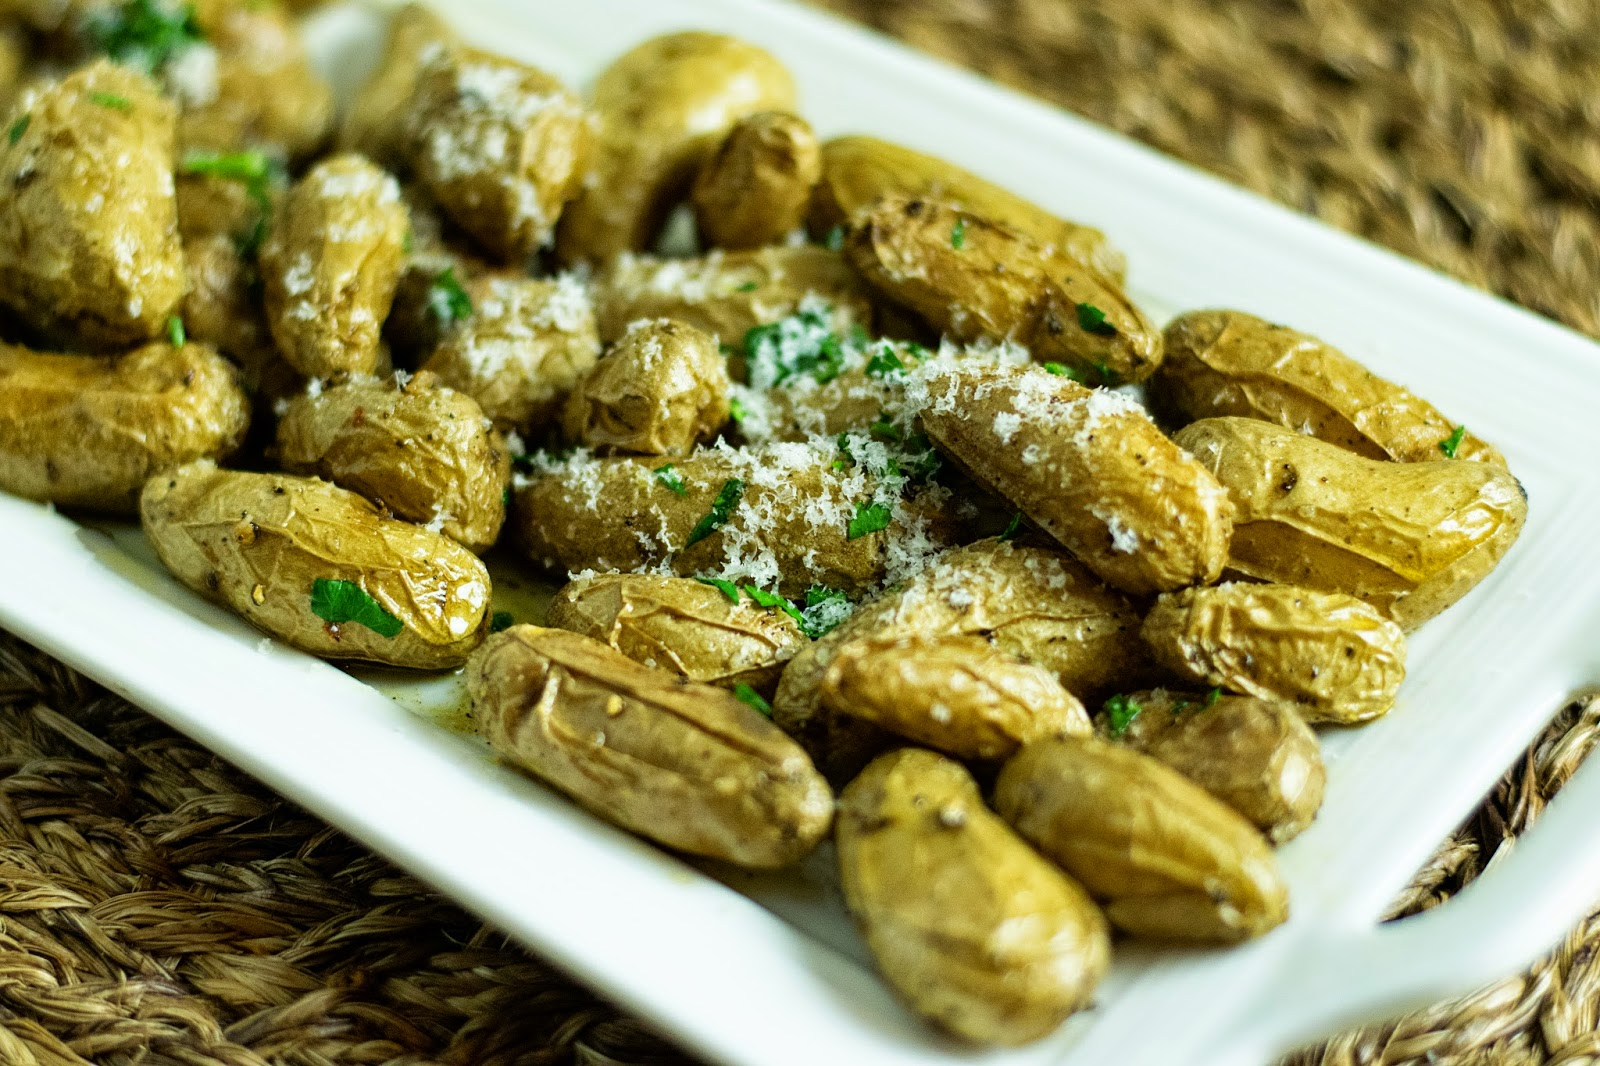 Roasted Truffle and Parmesan Fingerling Potatoes